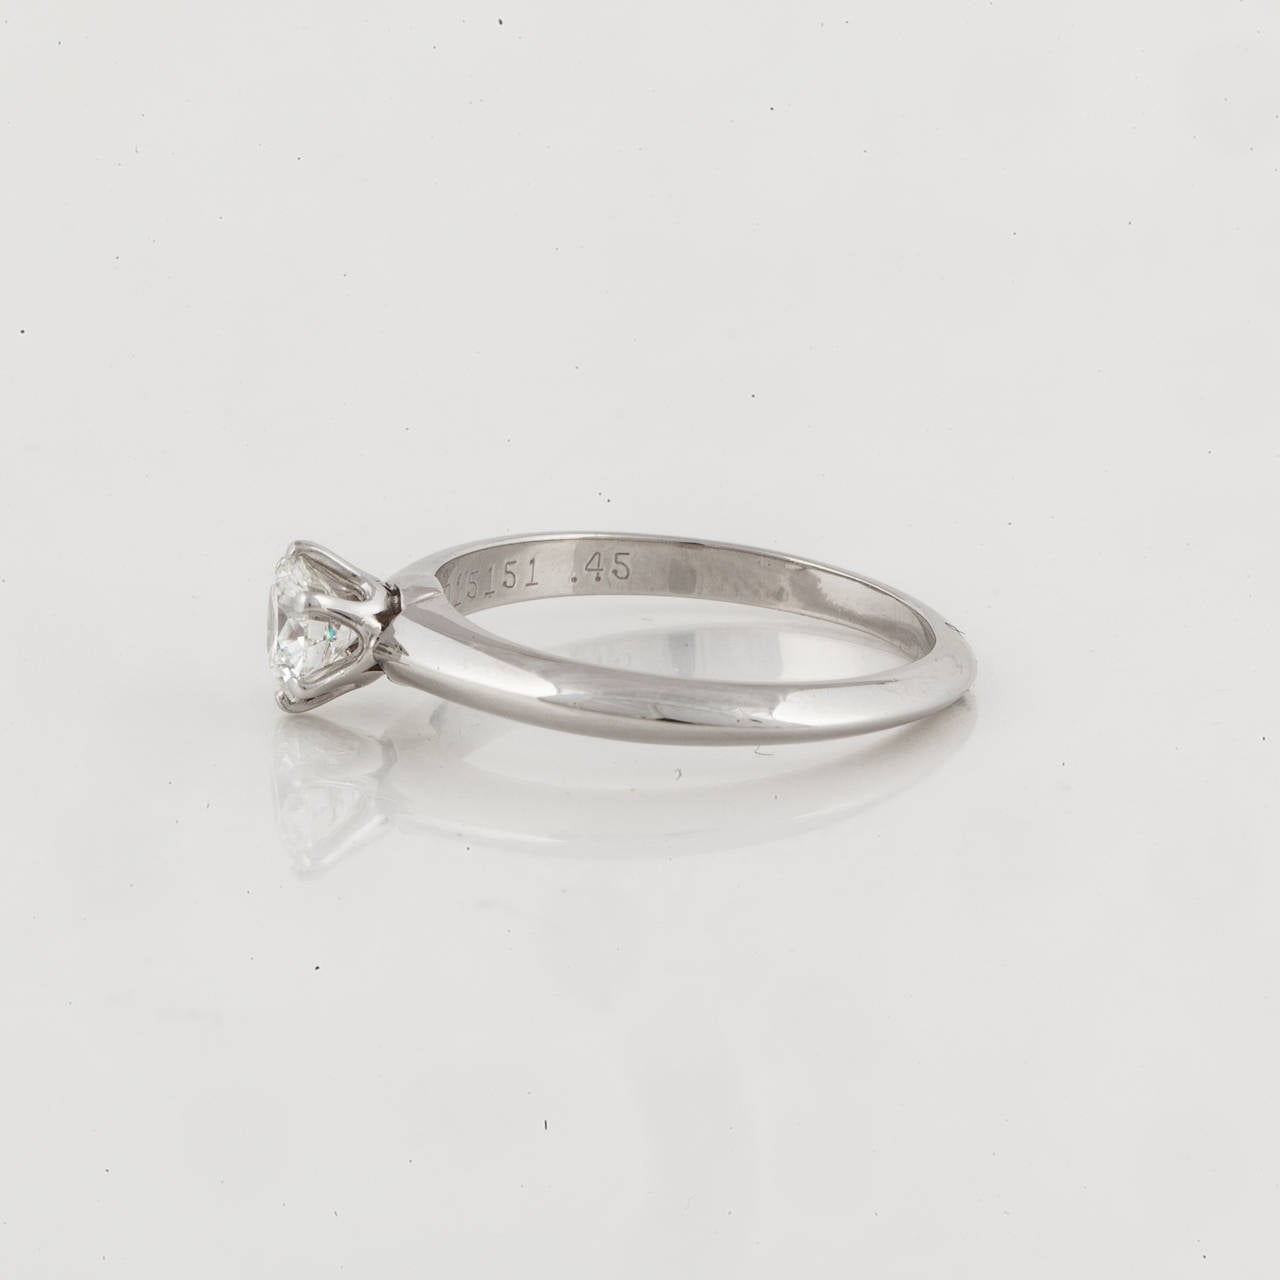 Tiffany & Co. Diamond Platinum Solitare Ring 3